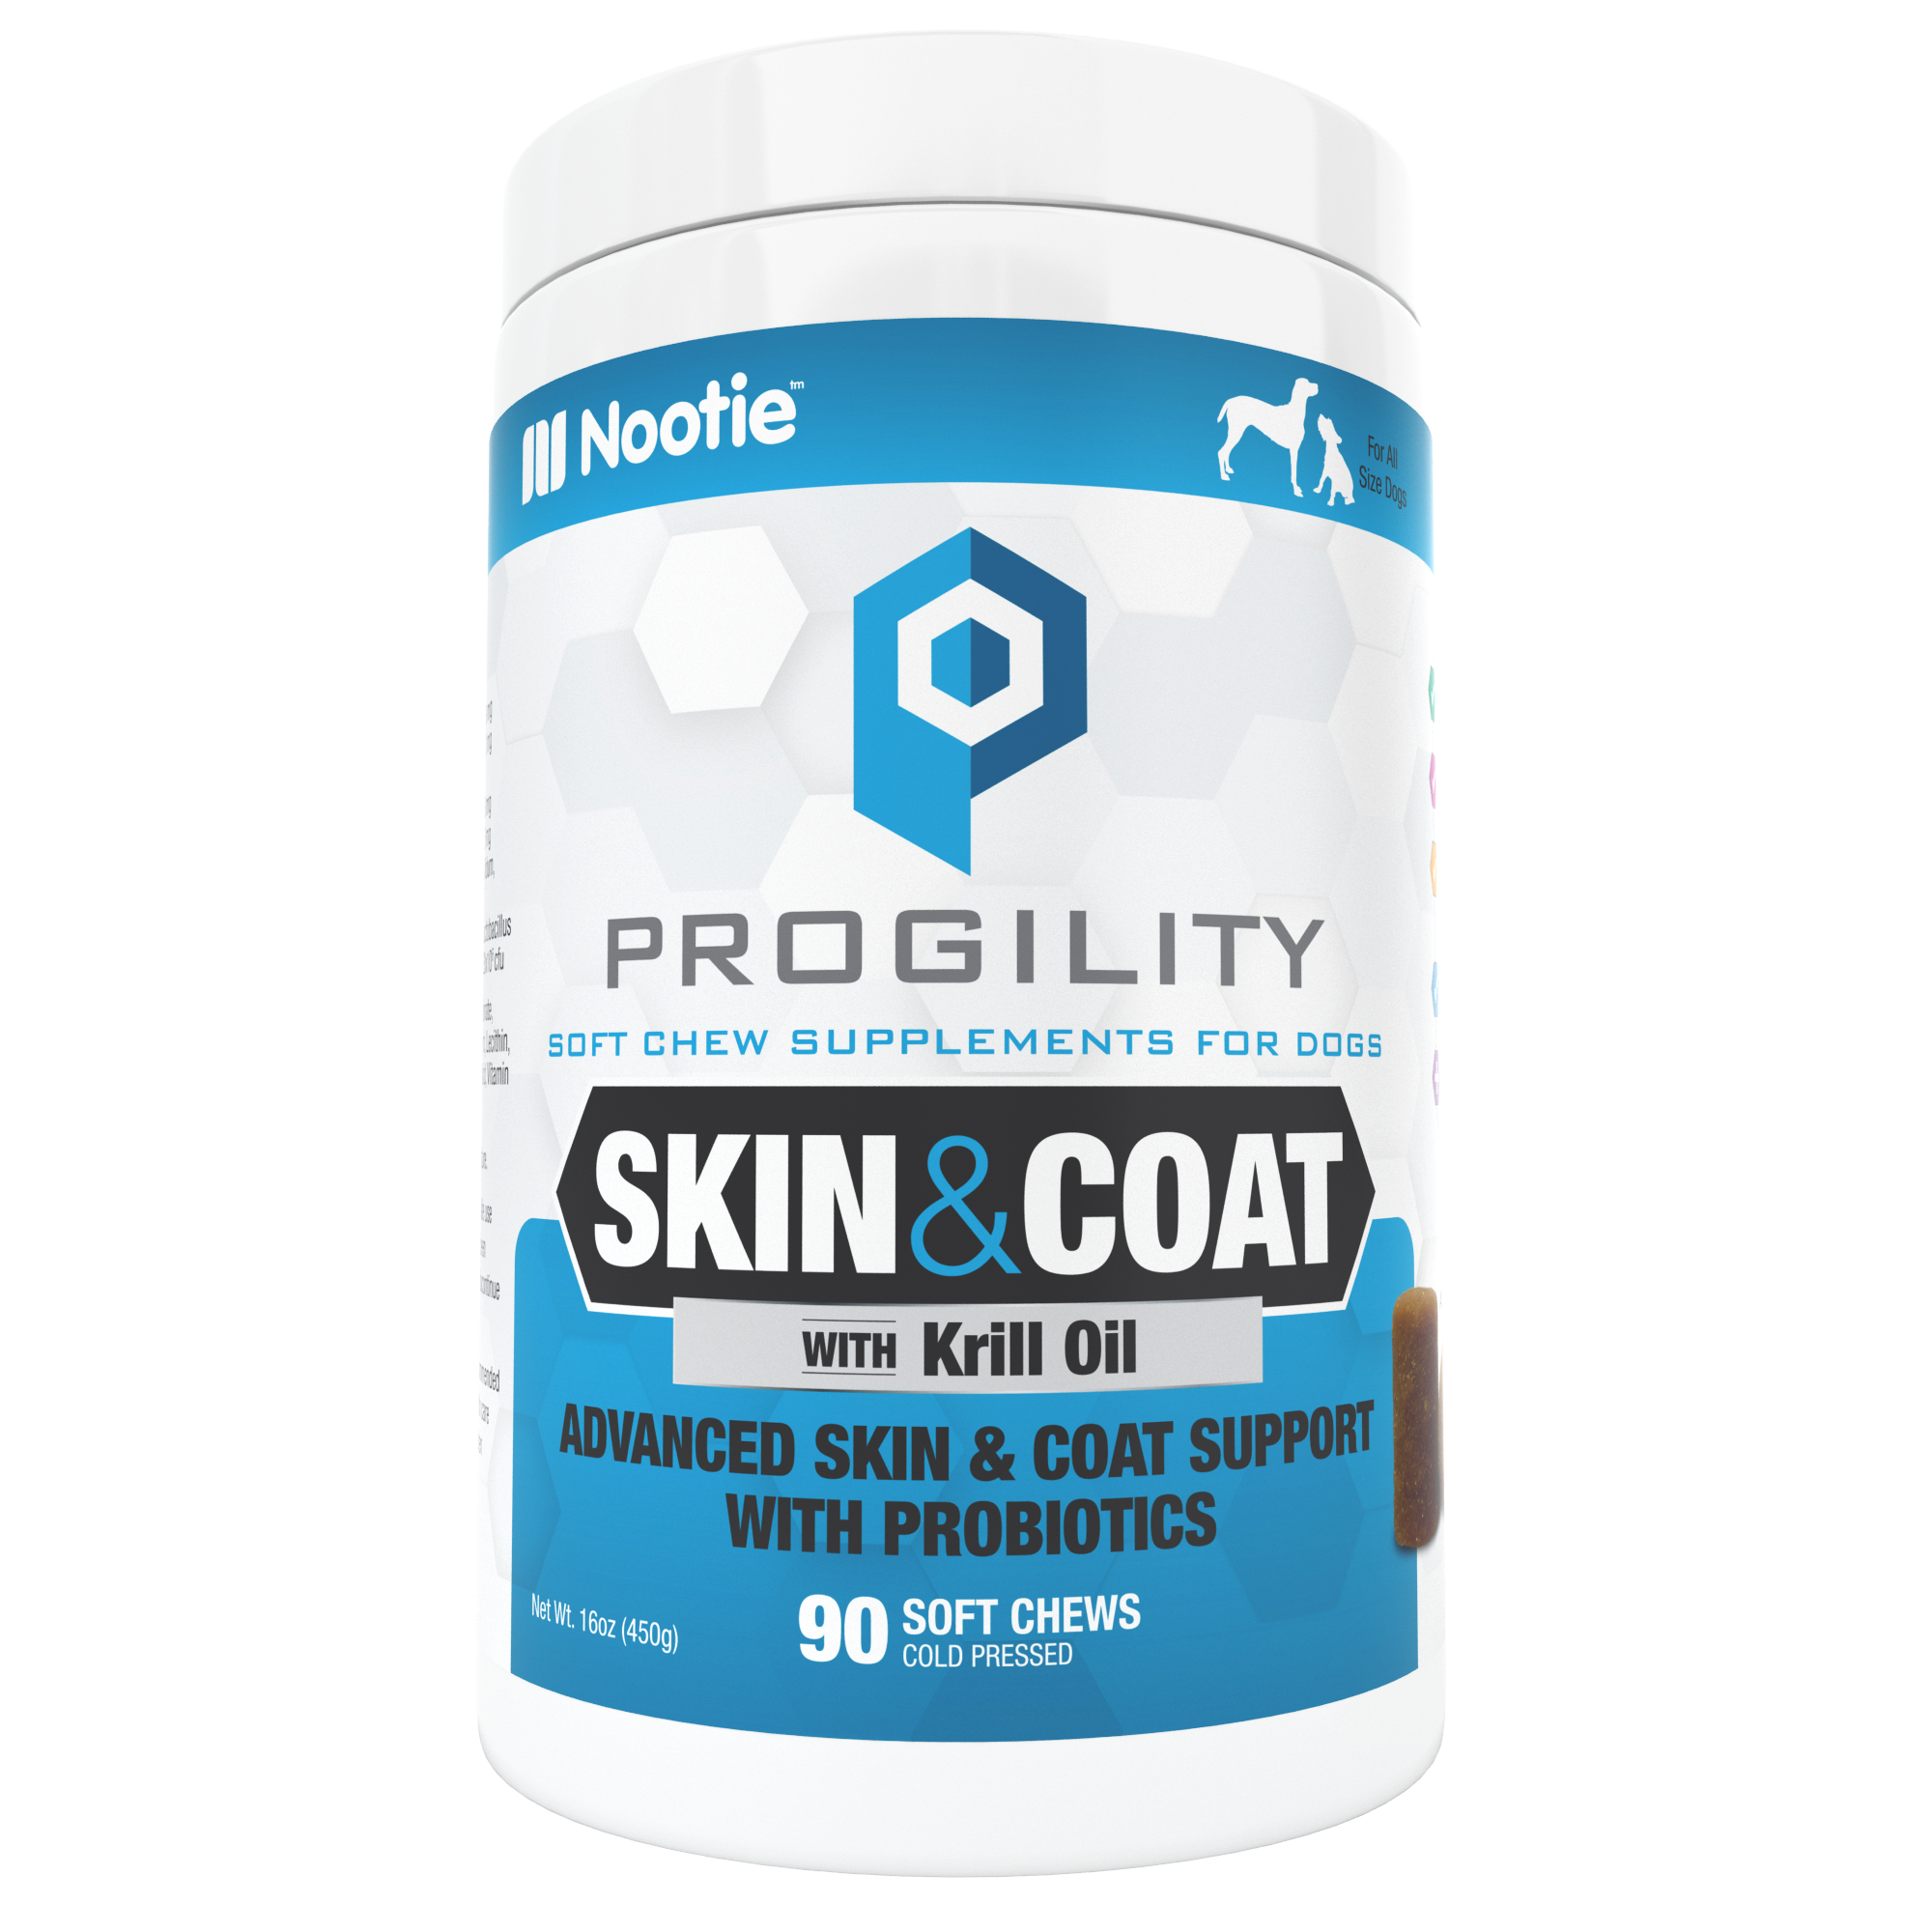 Progility Skin & Coat Soft Chew Supplements for Dogs